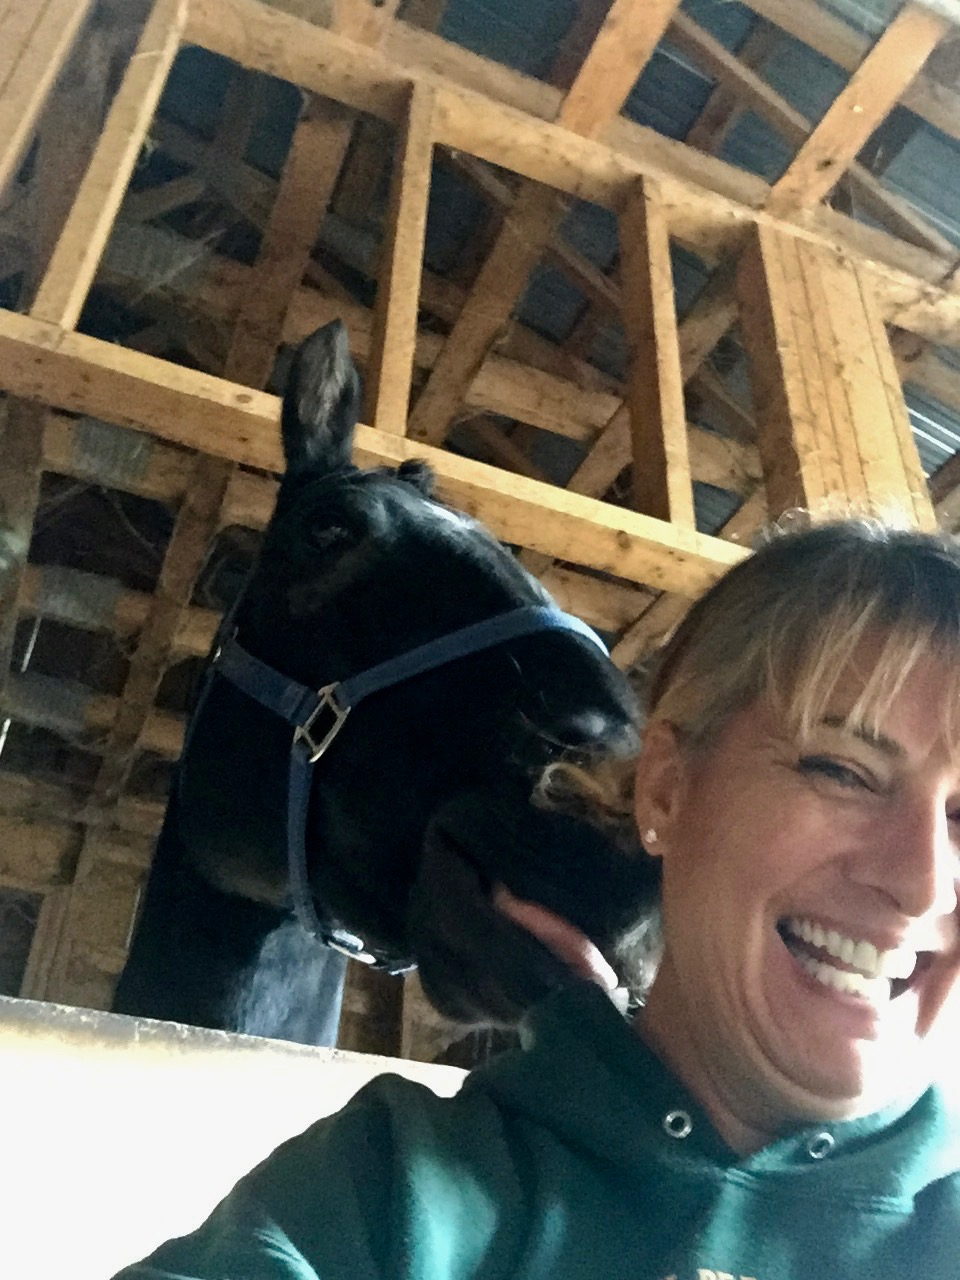 2019 - Standing outside of Sooty's stall, giving Reiki to another horse, Portia - Sooty started nibbling at my hair! I pulled my phone out of my pocket to take these pictures!